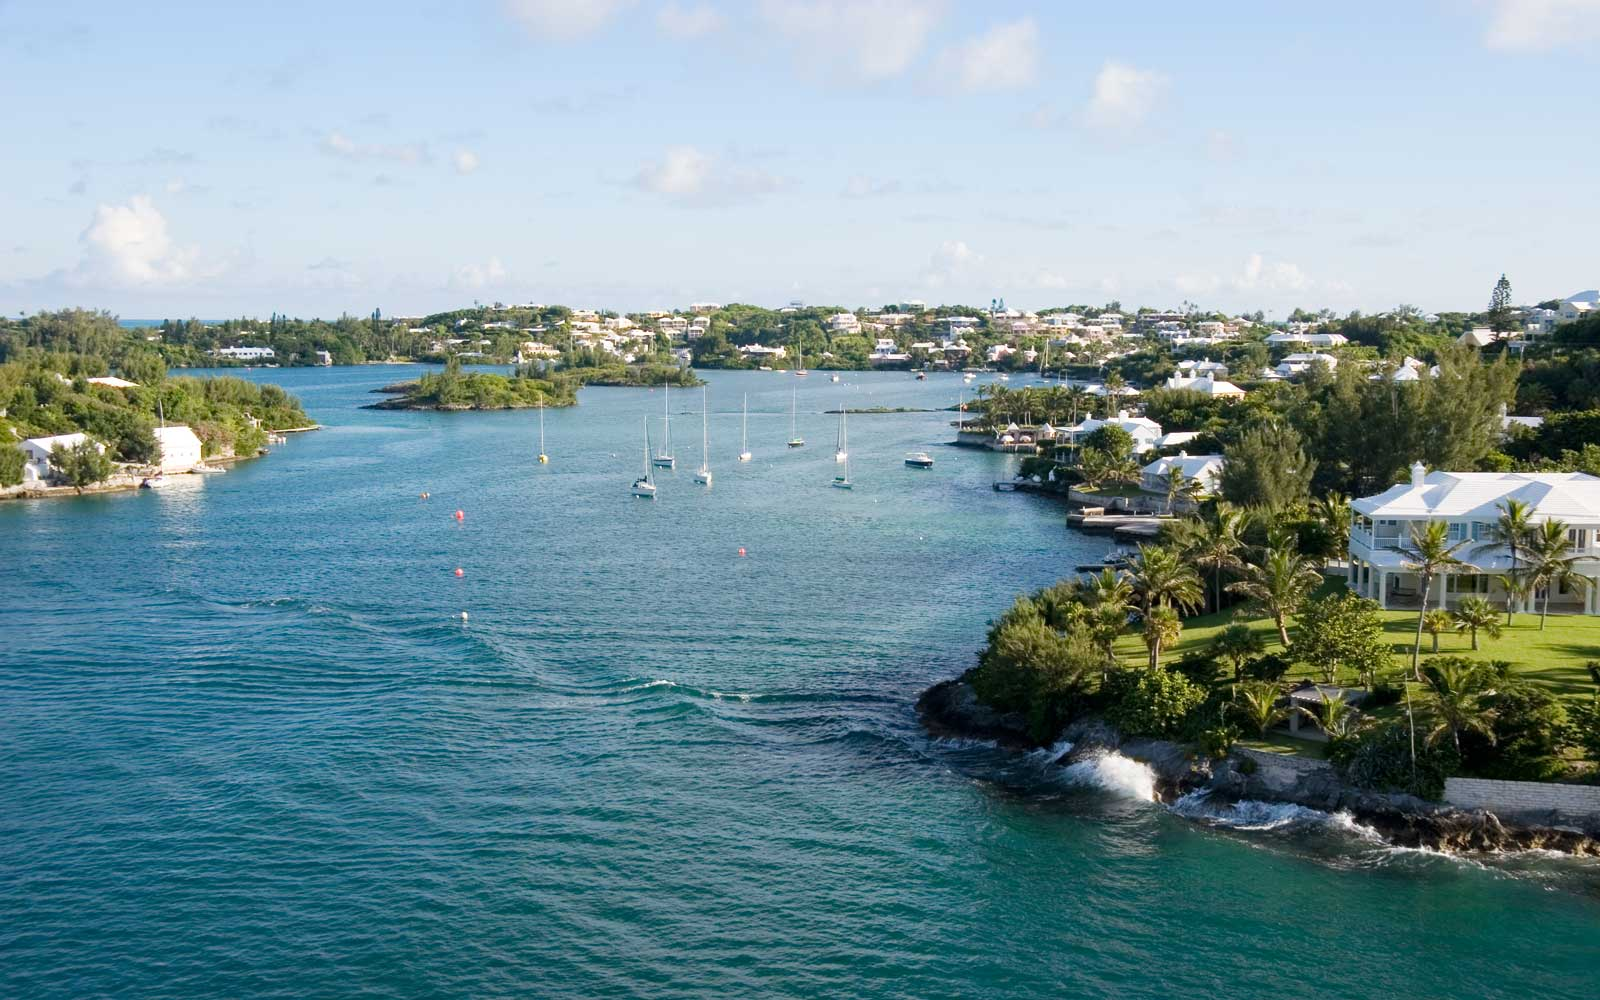 Waterway near entrance to Hamilton harbor in Bermuda.